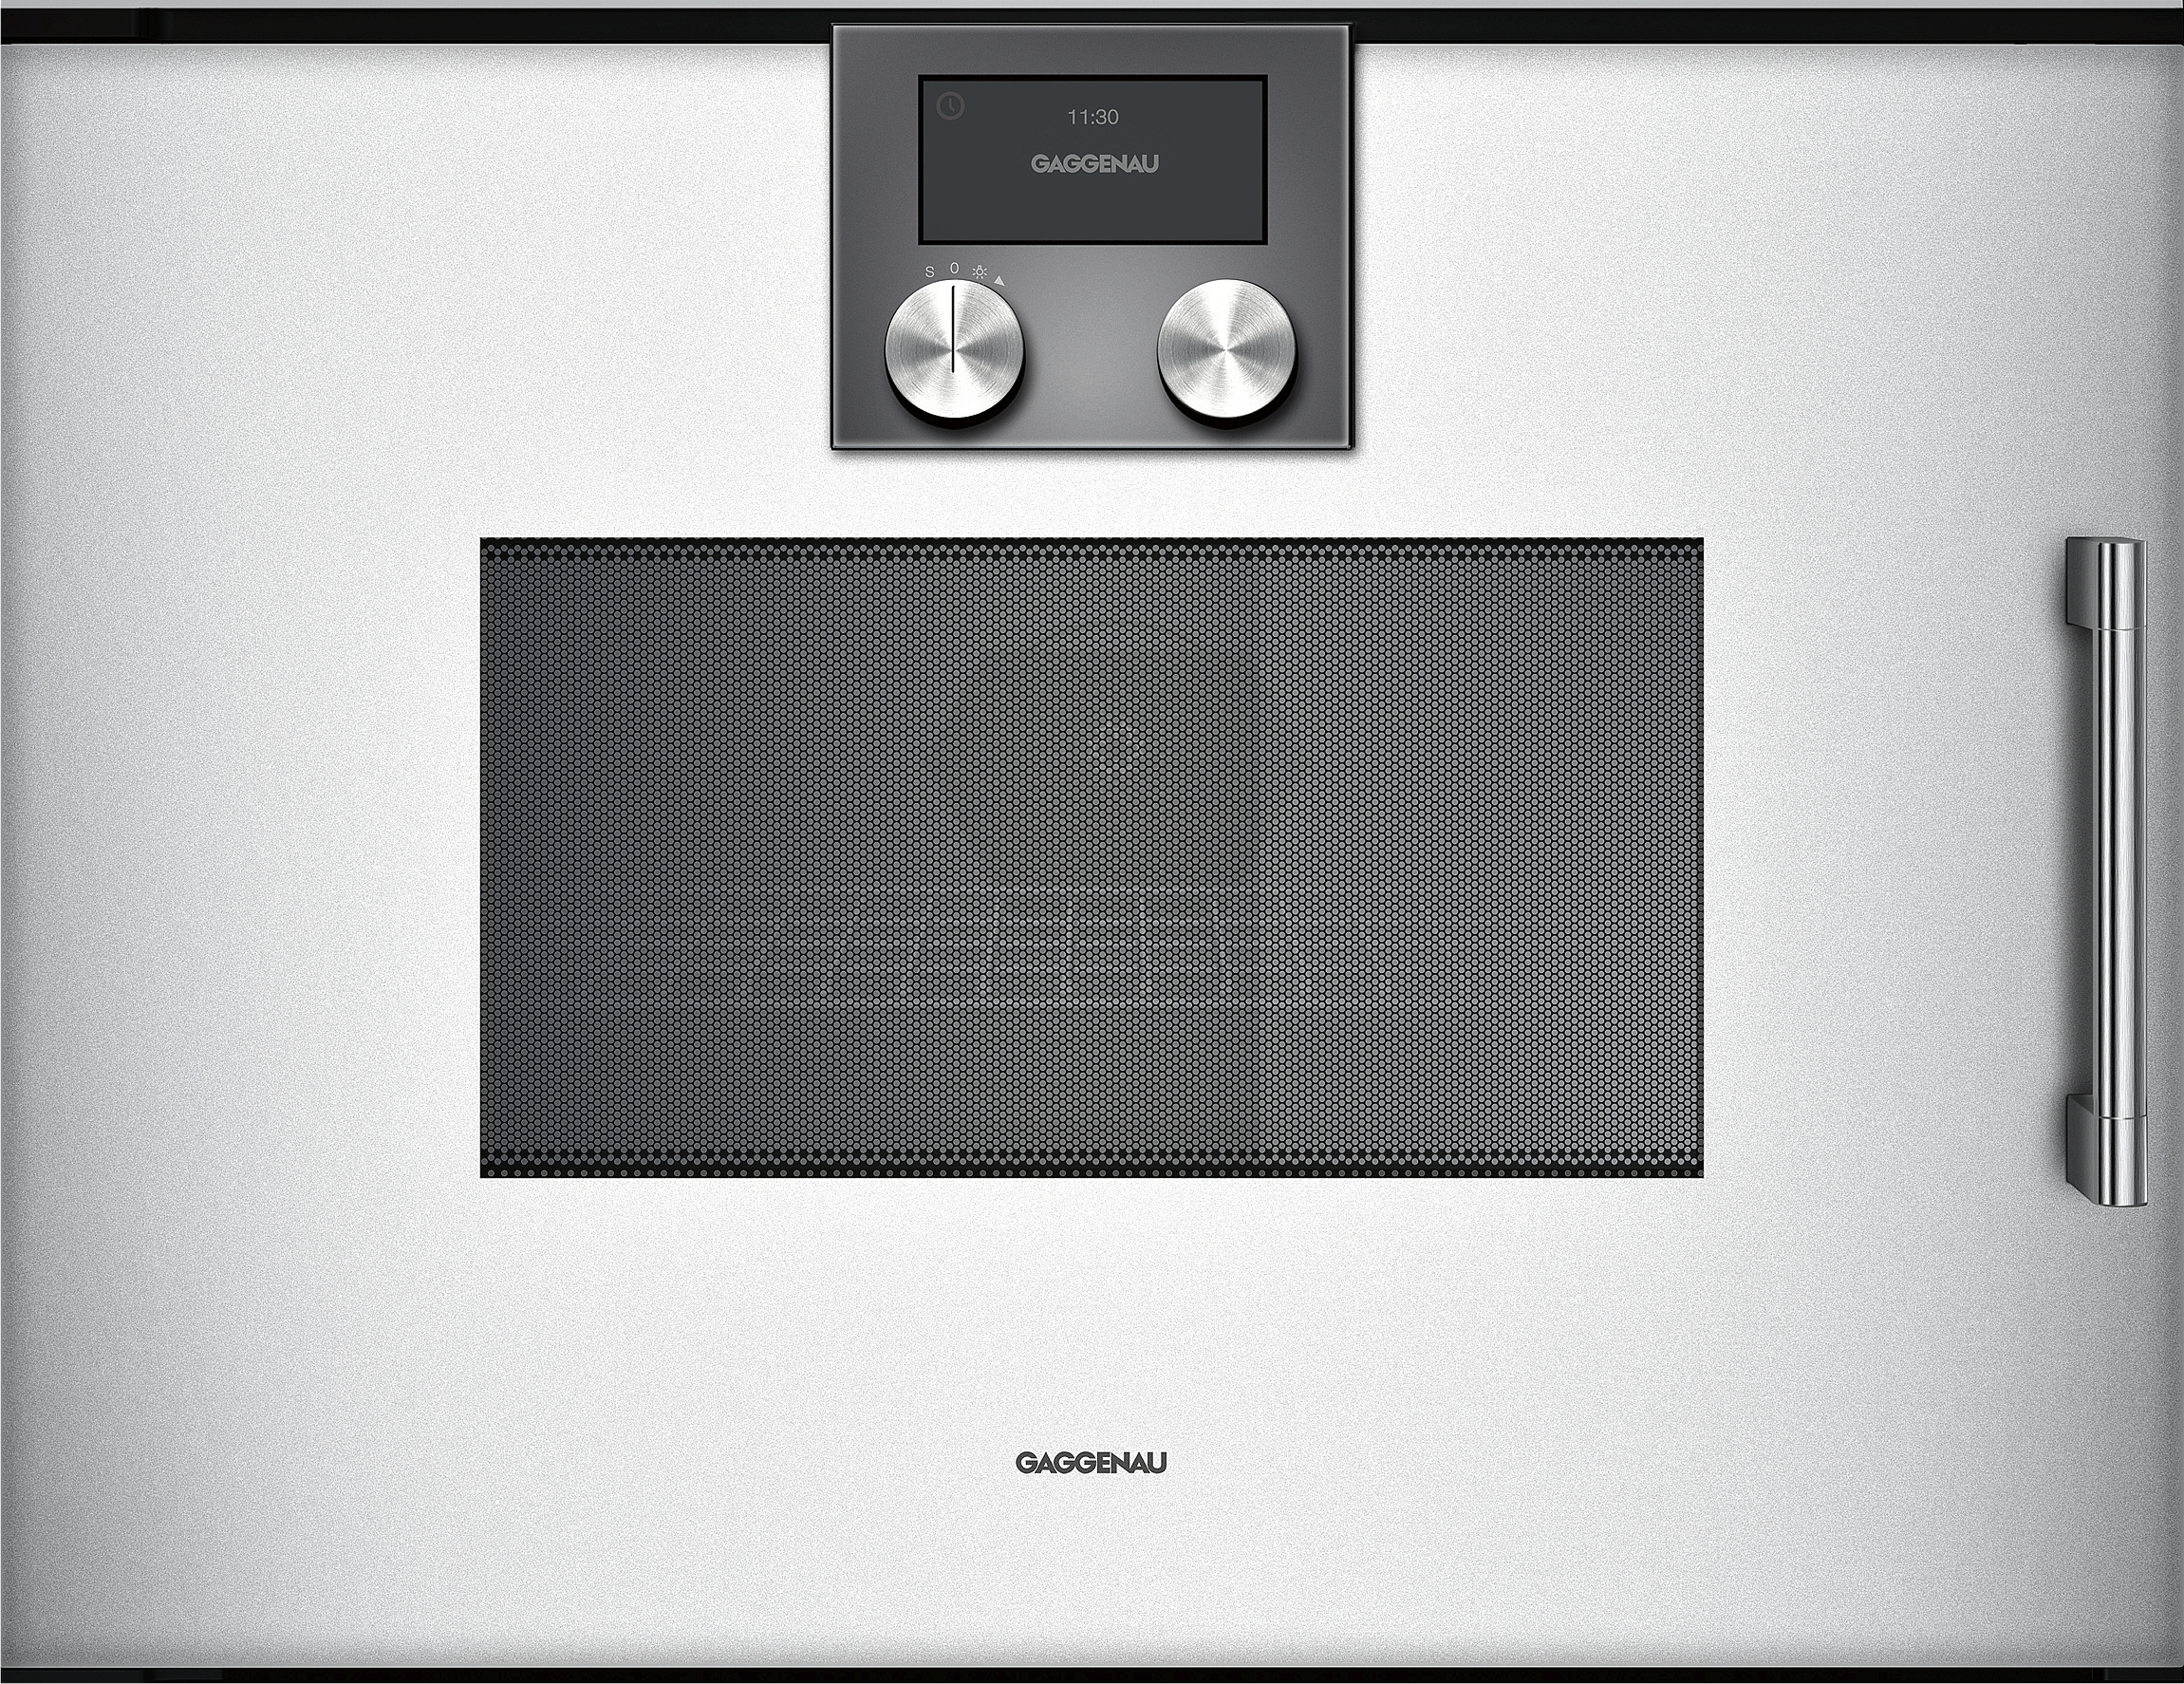 gaggenau bmp251130 mikrowellen backofen serie 200 vollglast r in gaggenau silber breite 60 cm. Black Bedroom Furniture Sets. Home Design Ideas